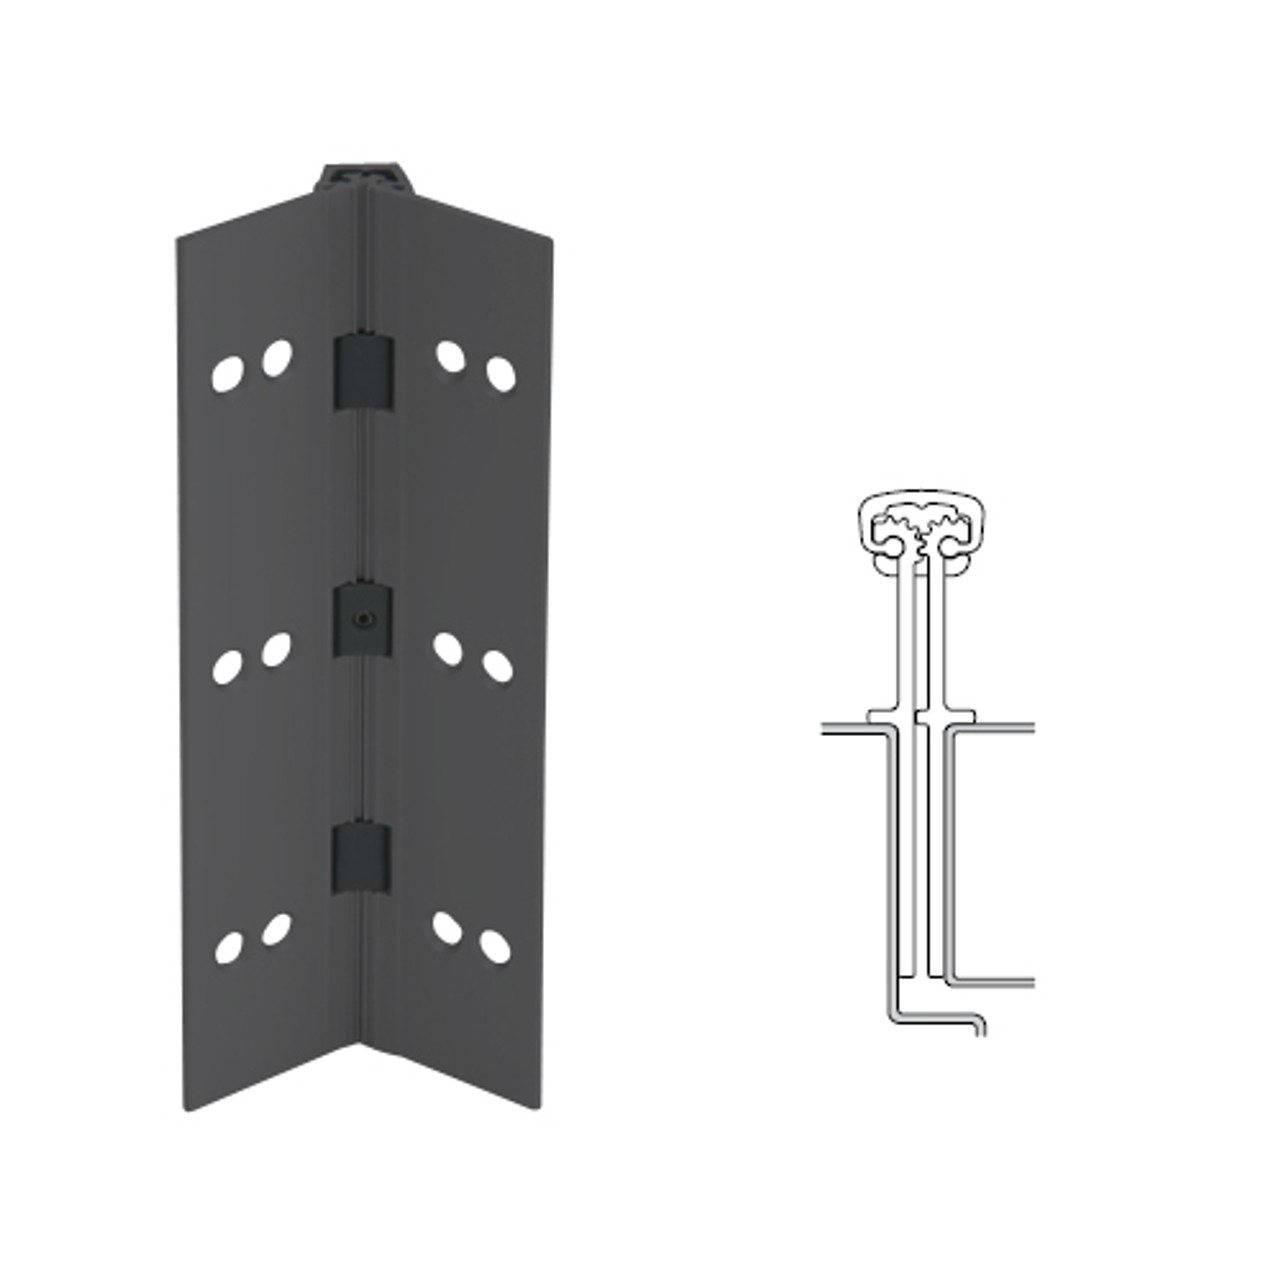 040XY-315AN-95-SECHM IVES Full Mortise Continuous Geared Hinges with Security Screws - Hex Pin Drive in Anodized Black